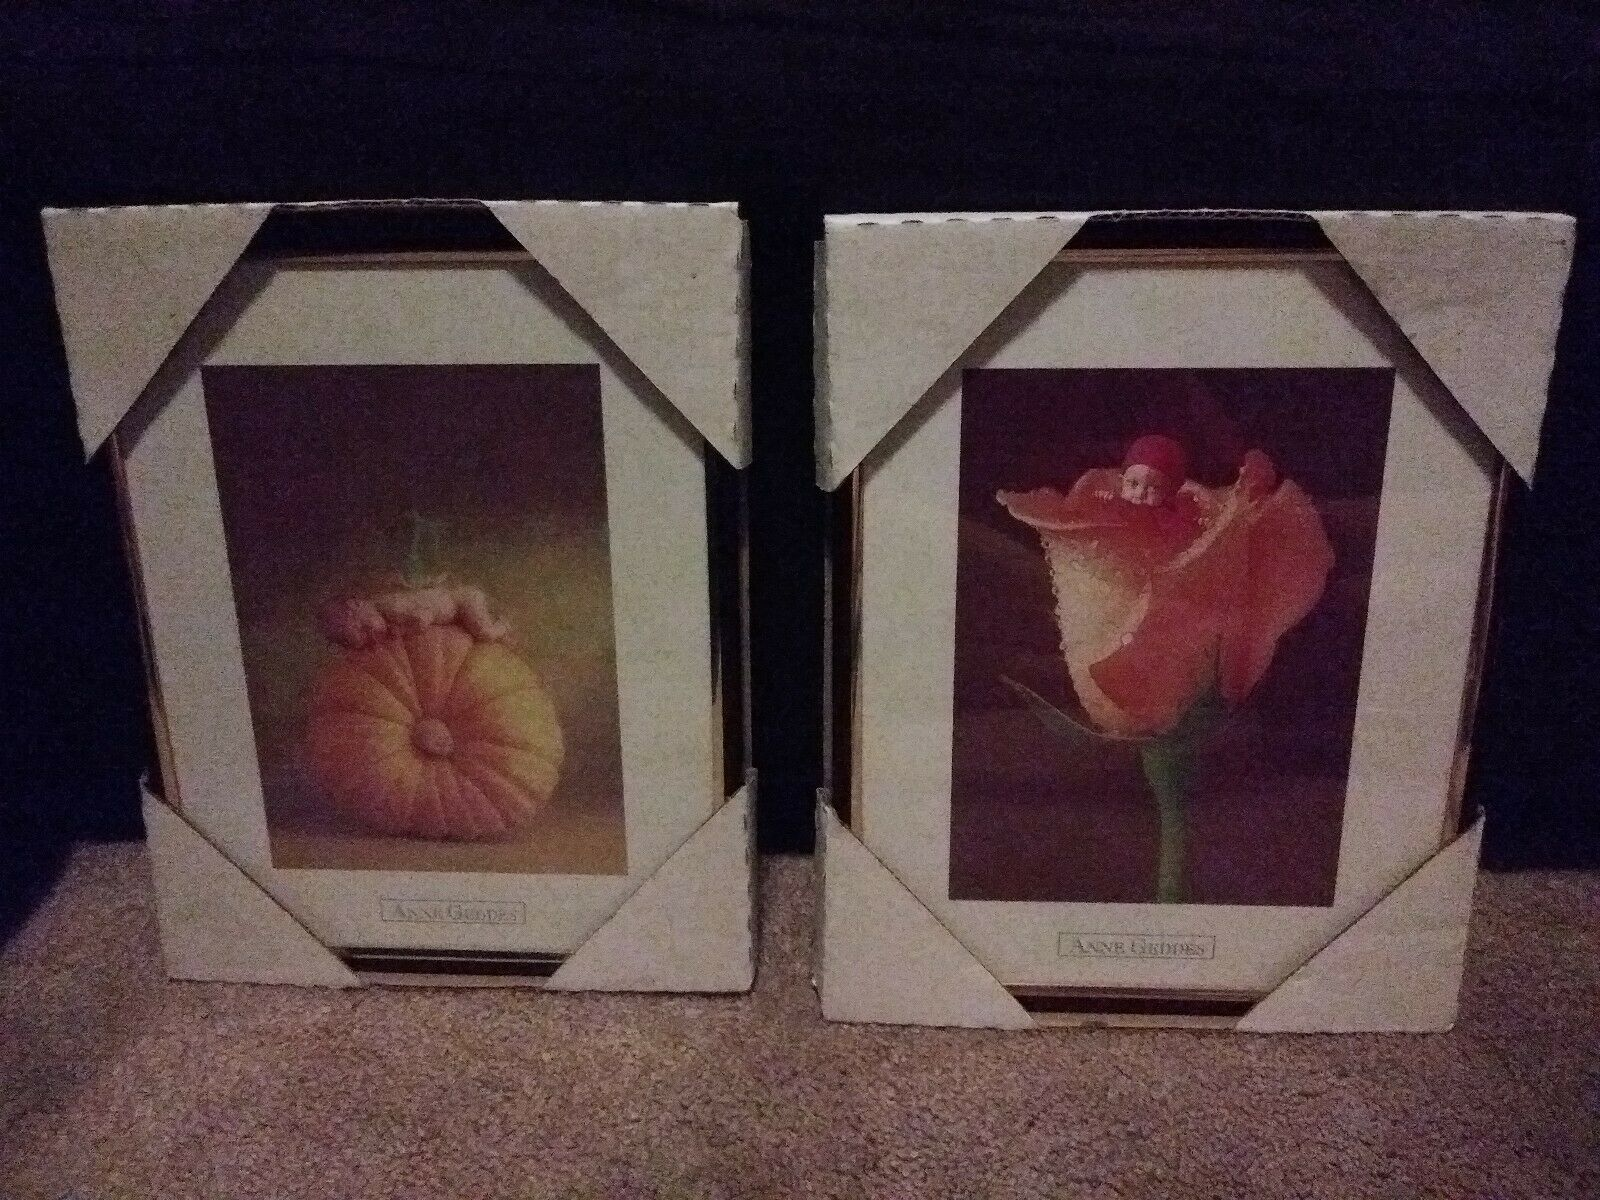 (2) Anne Geddes Framed Wall Pictures Prints * Brand New! * Adorable Home Decor! 6